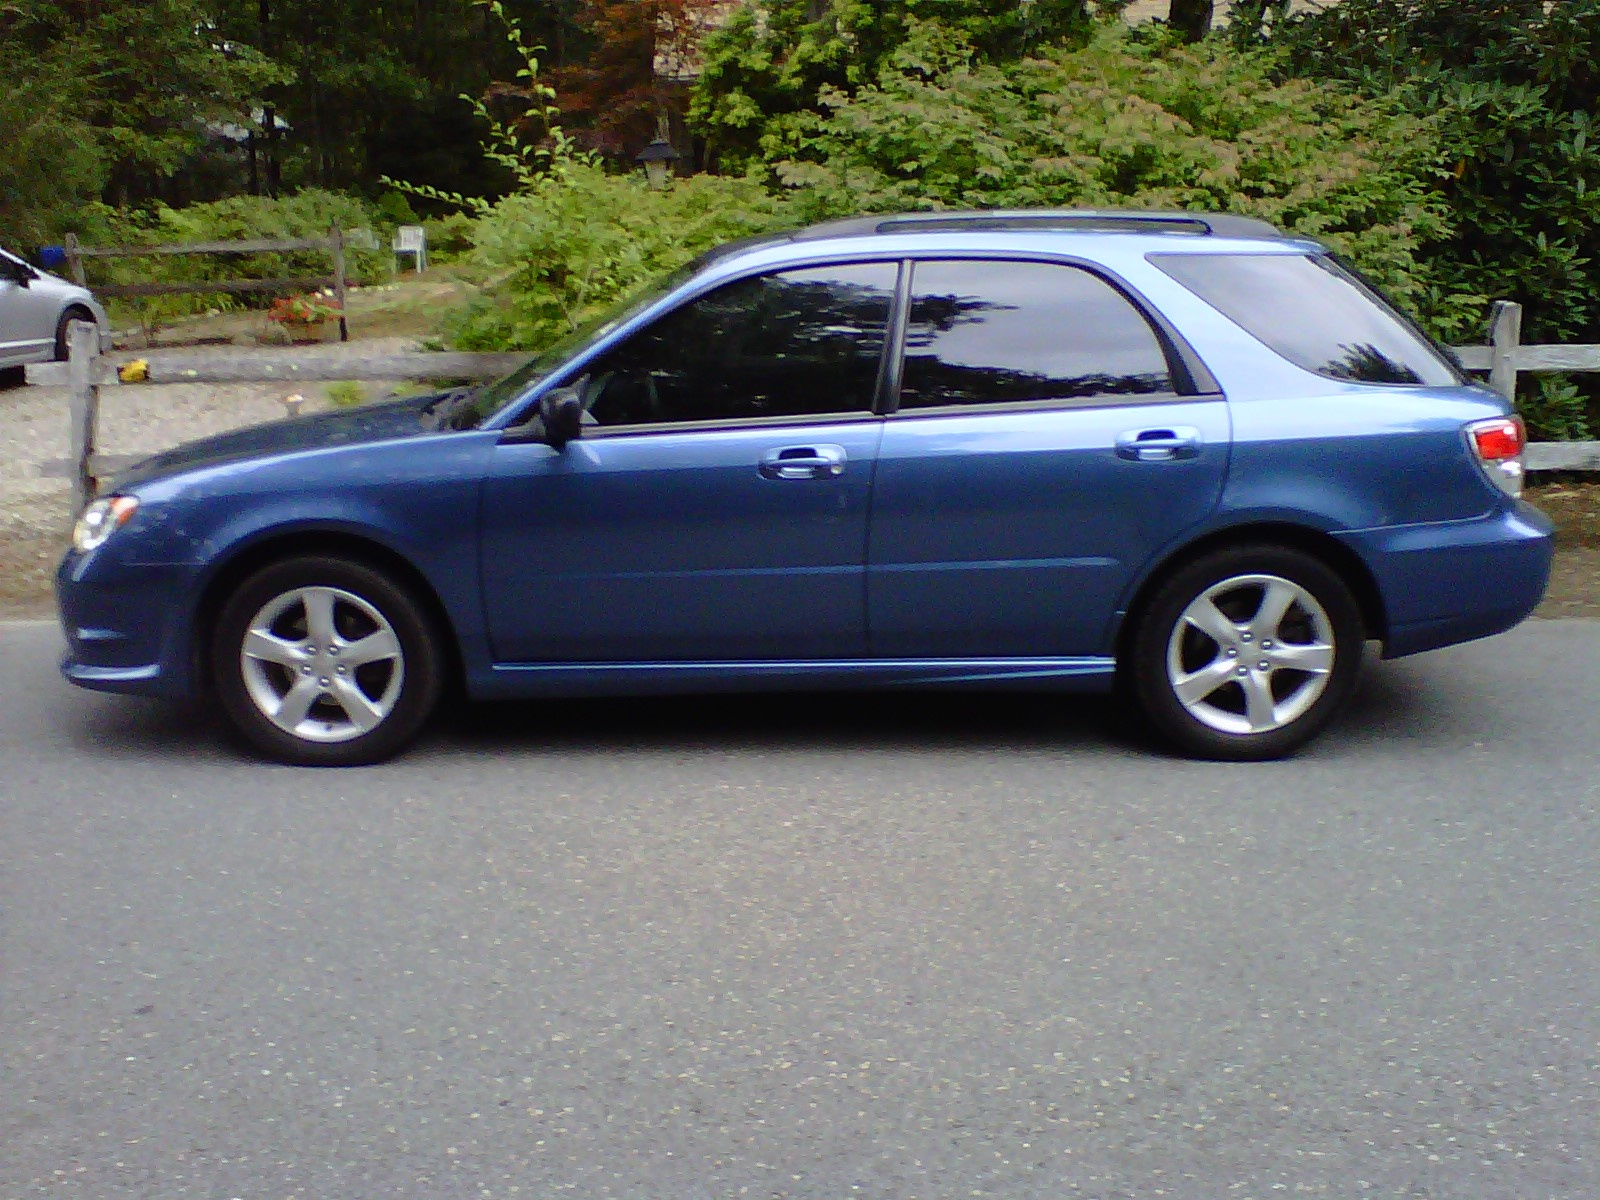 Subaru impreza questions how to upgrade a 07 subaru impreza 25 how to upgrade a 07 subaru impreza 25i non wrx vanachro Image collections